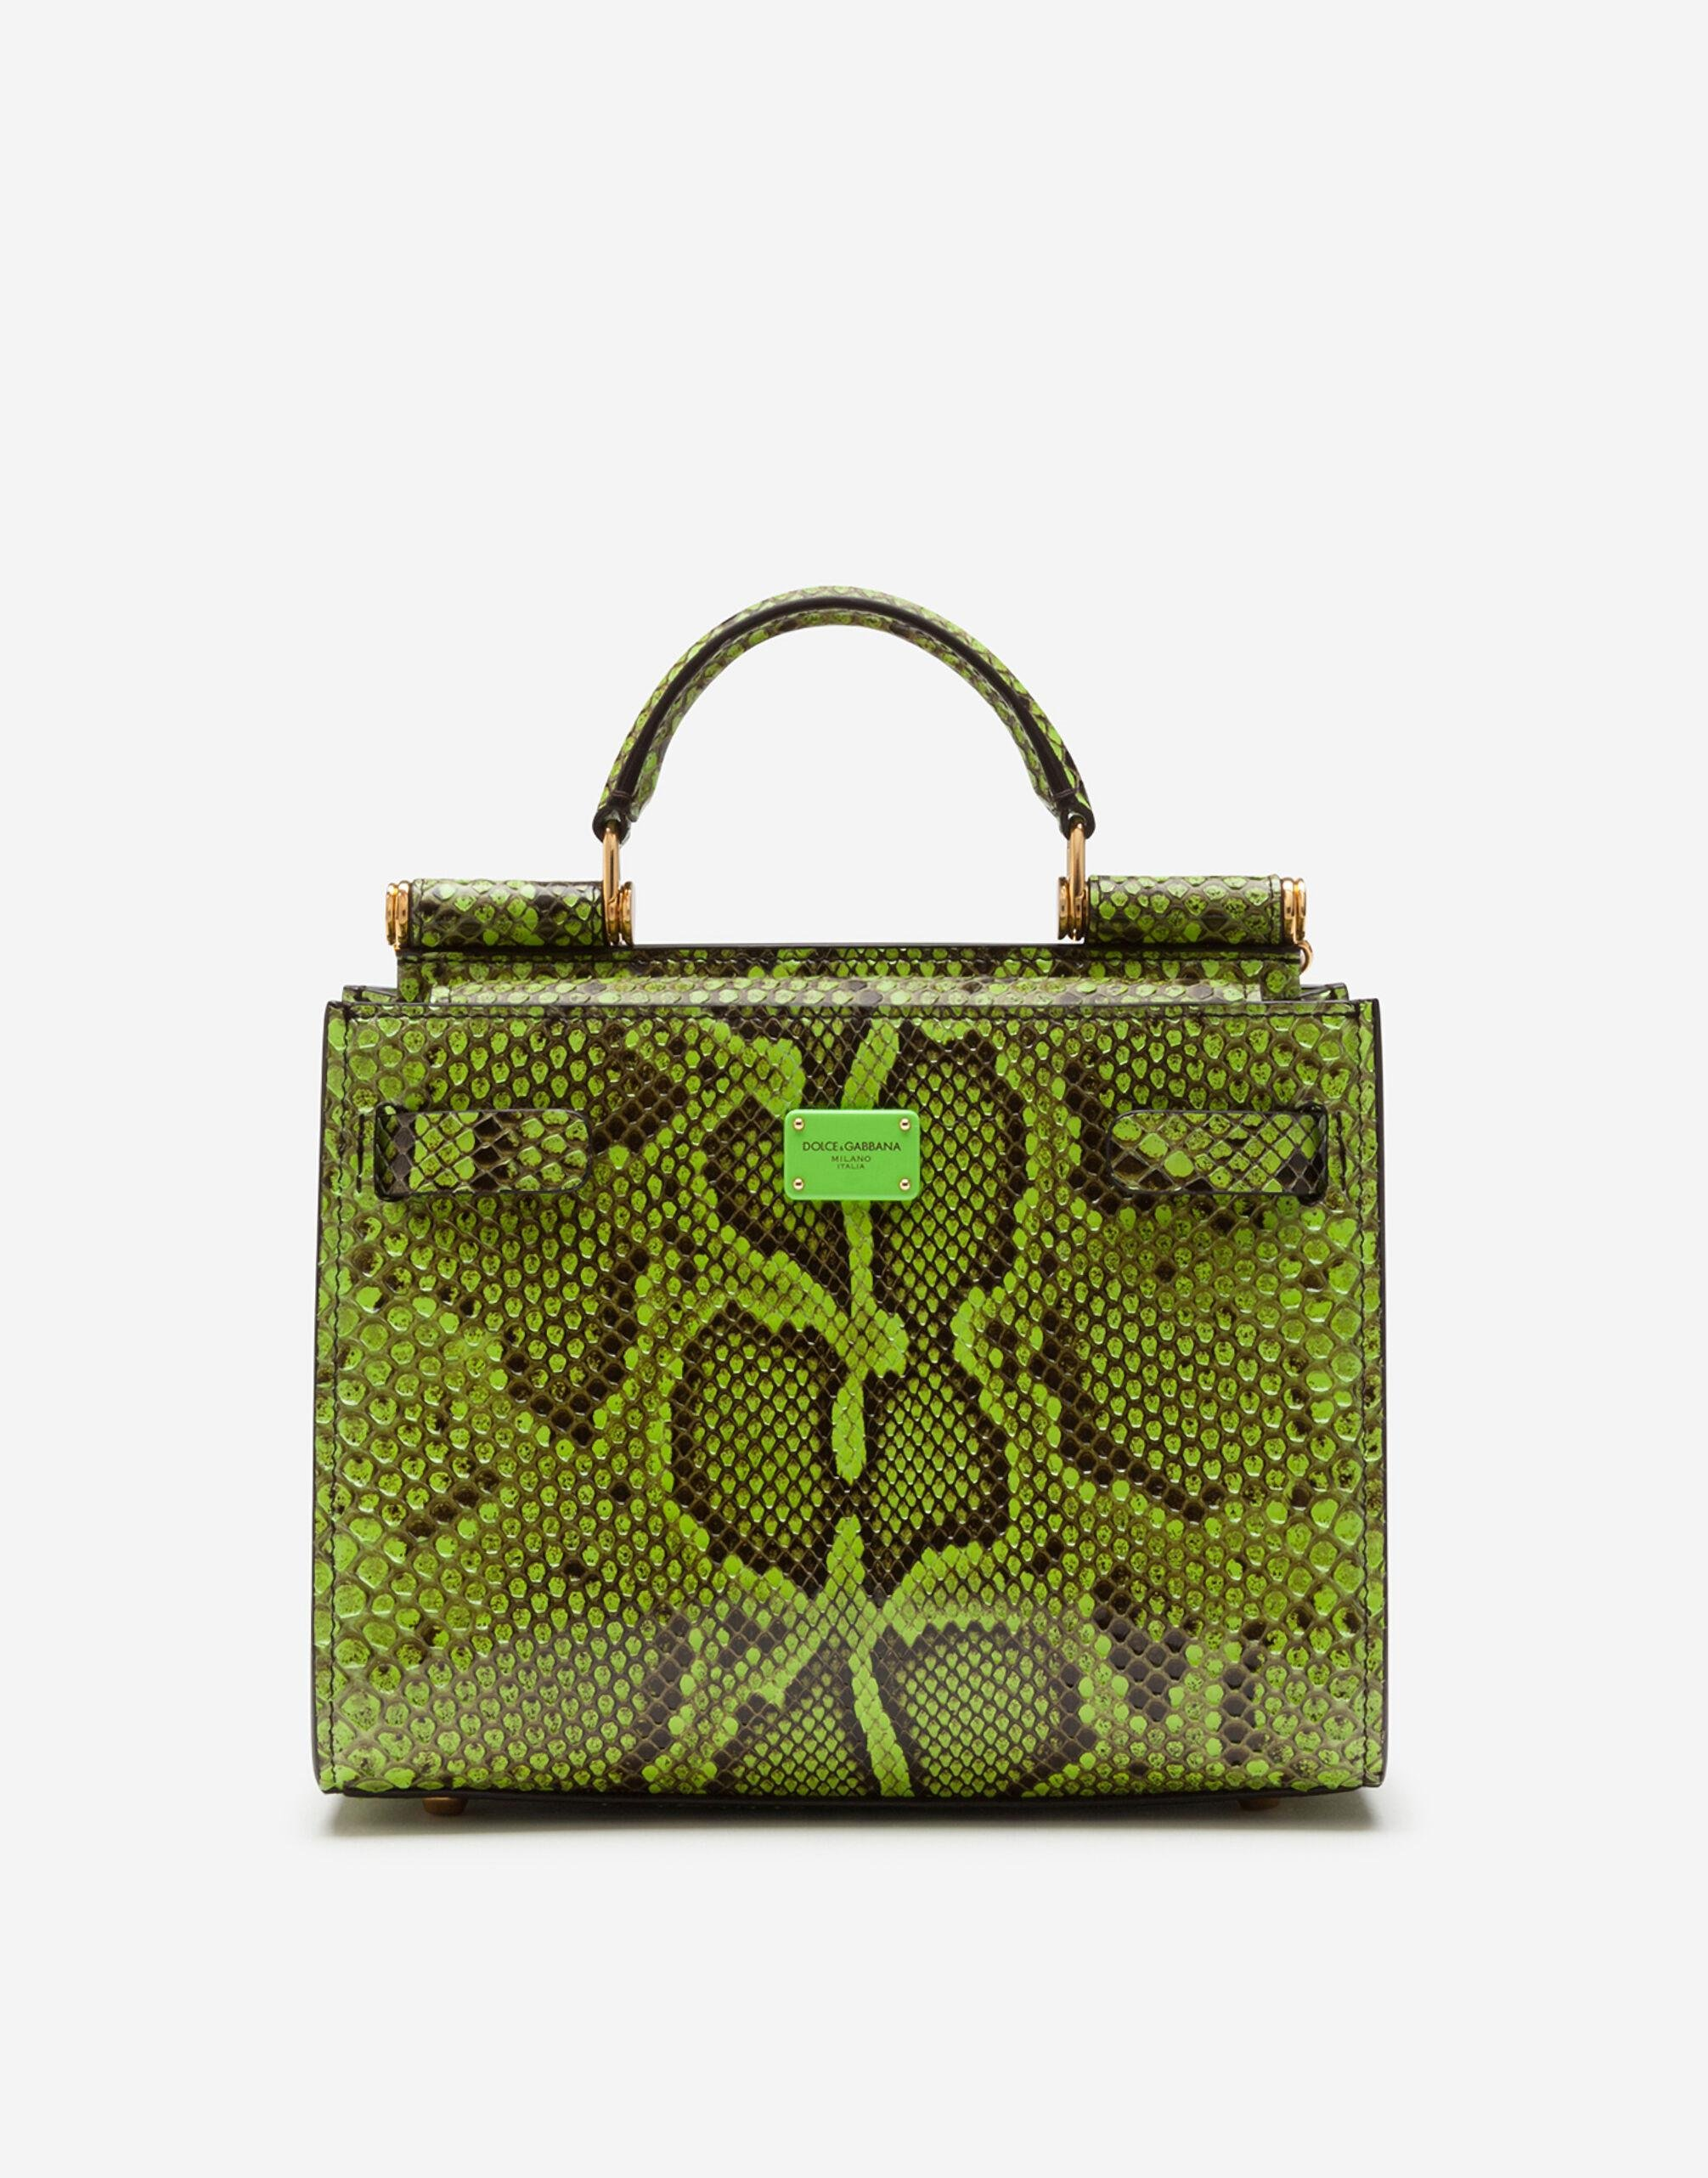 Sicily 62 small tote bag in python skin